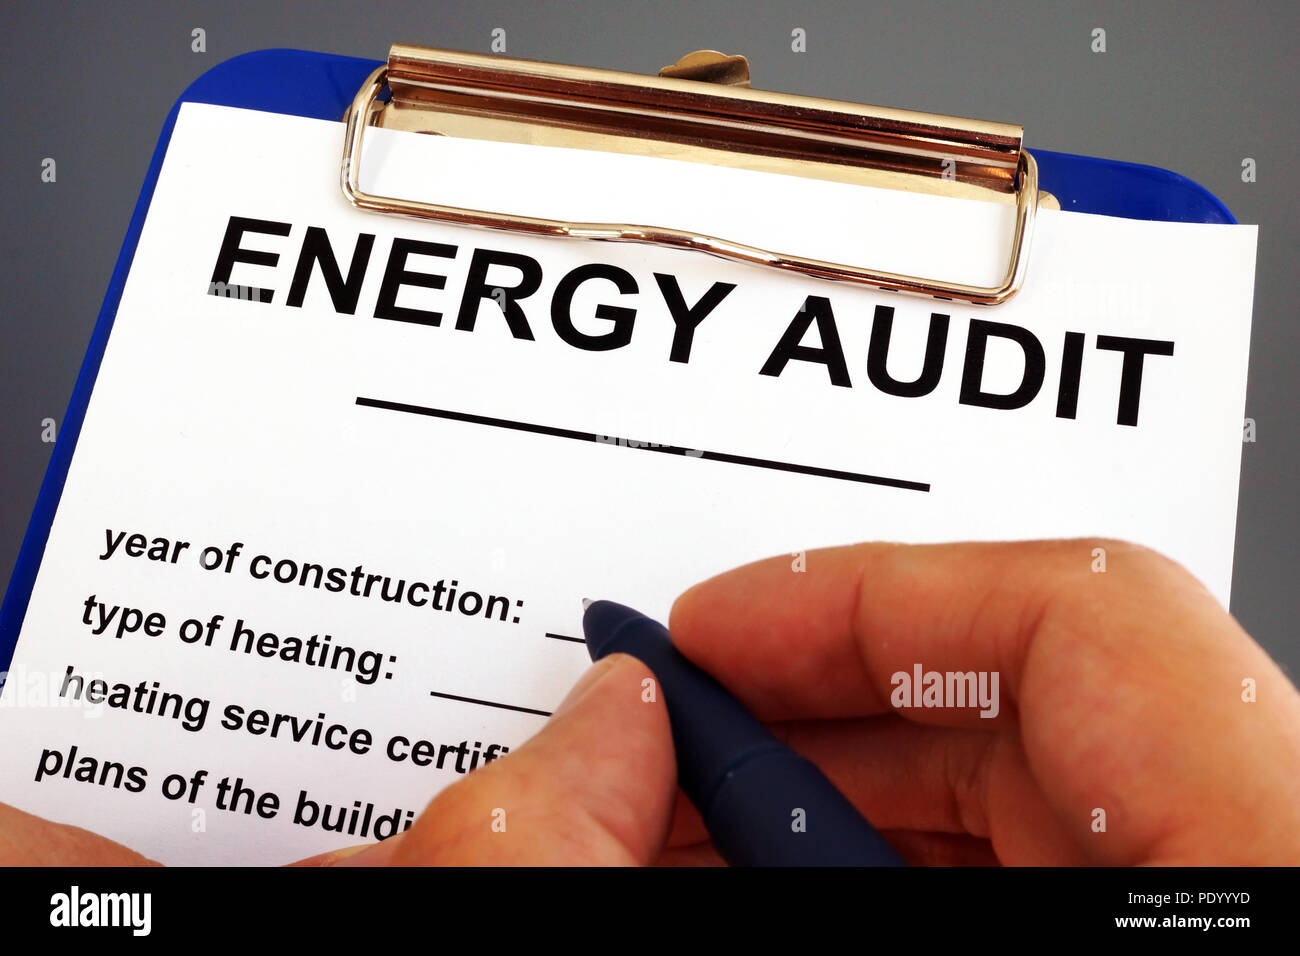 Home Energy Audit Stock Photos Amp Home Energy Audit Stock Images